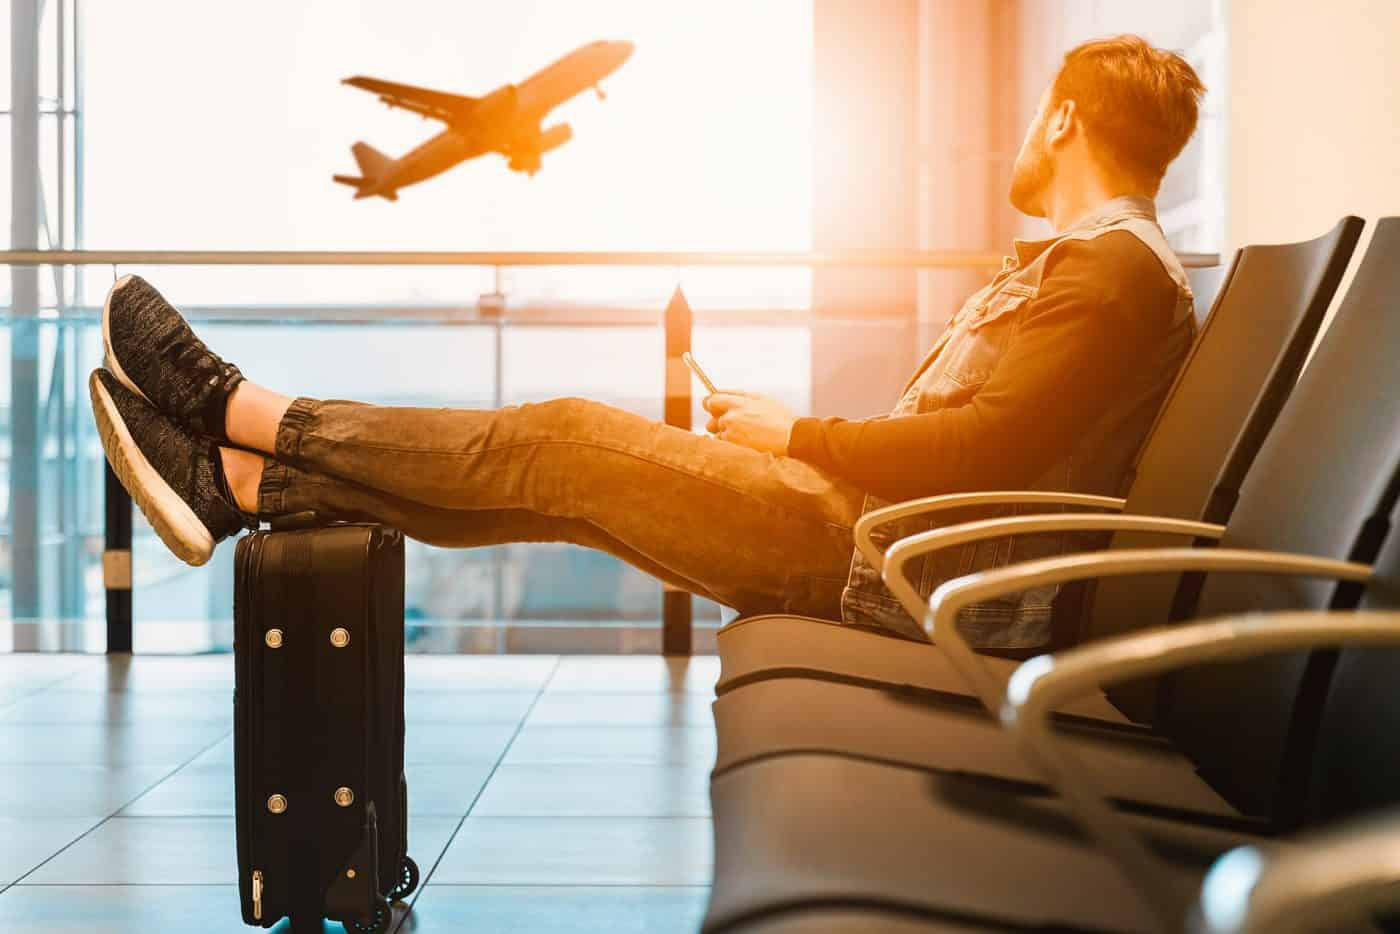 20 Travel Hacks That Will Save You Time and Money in 2021 1